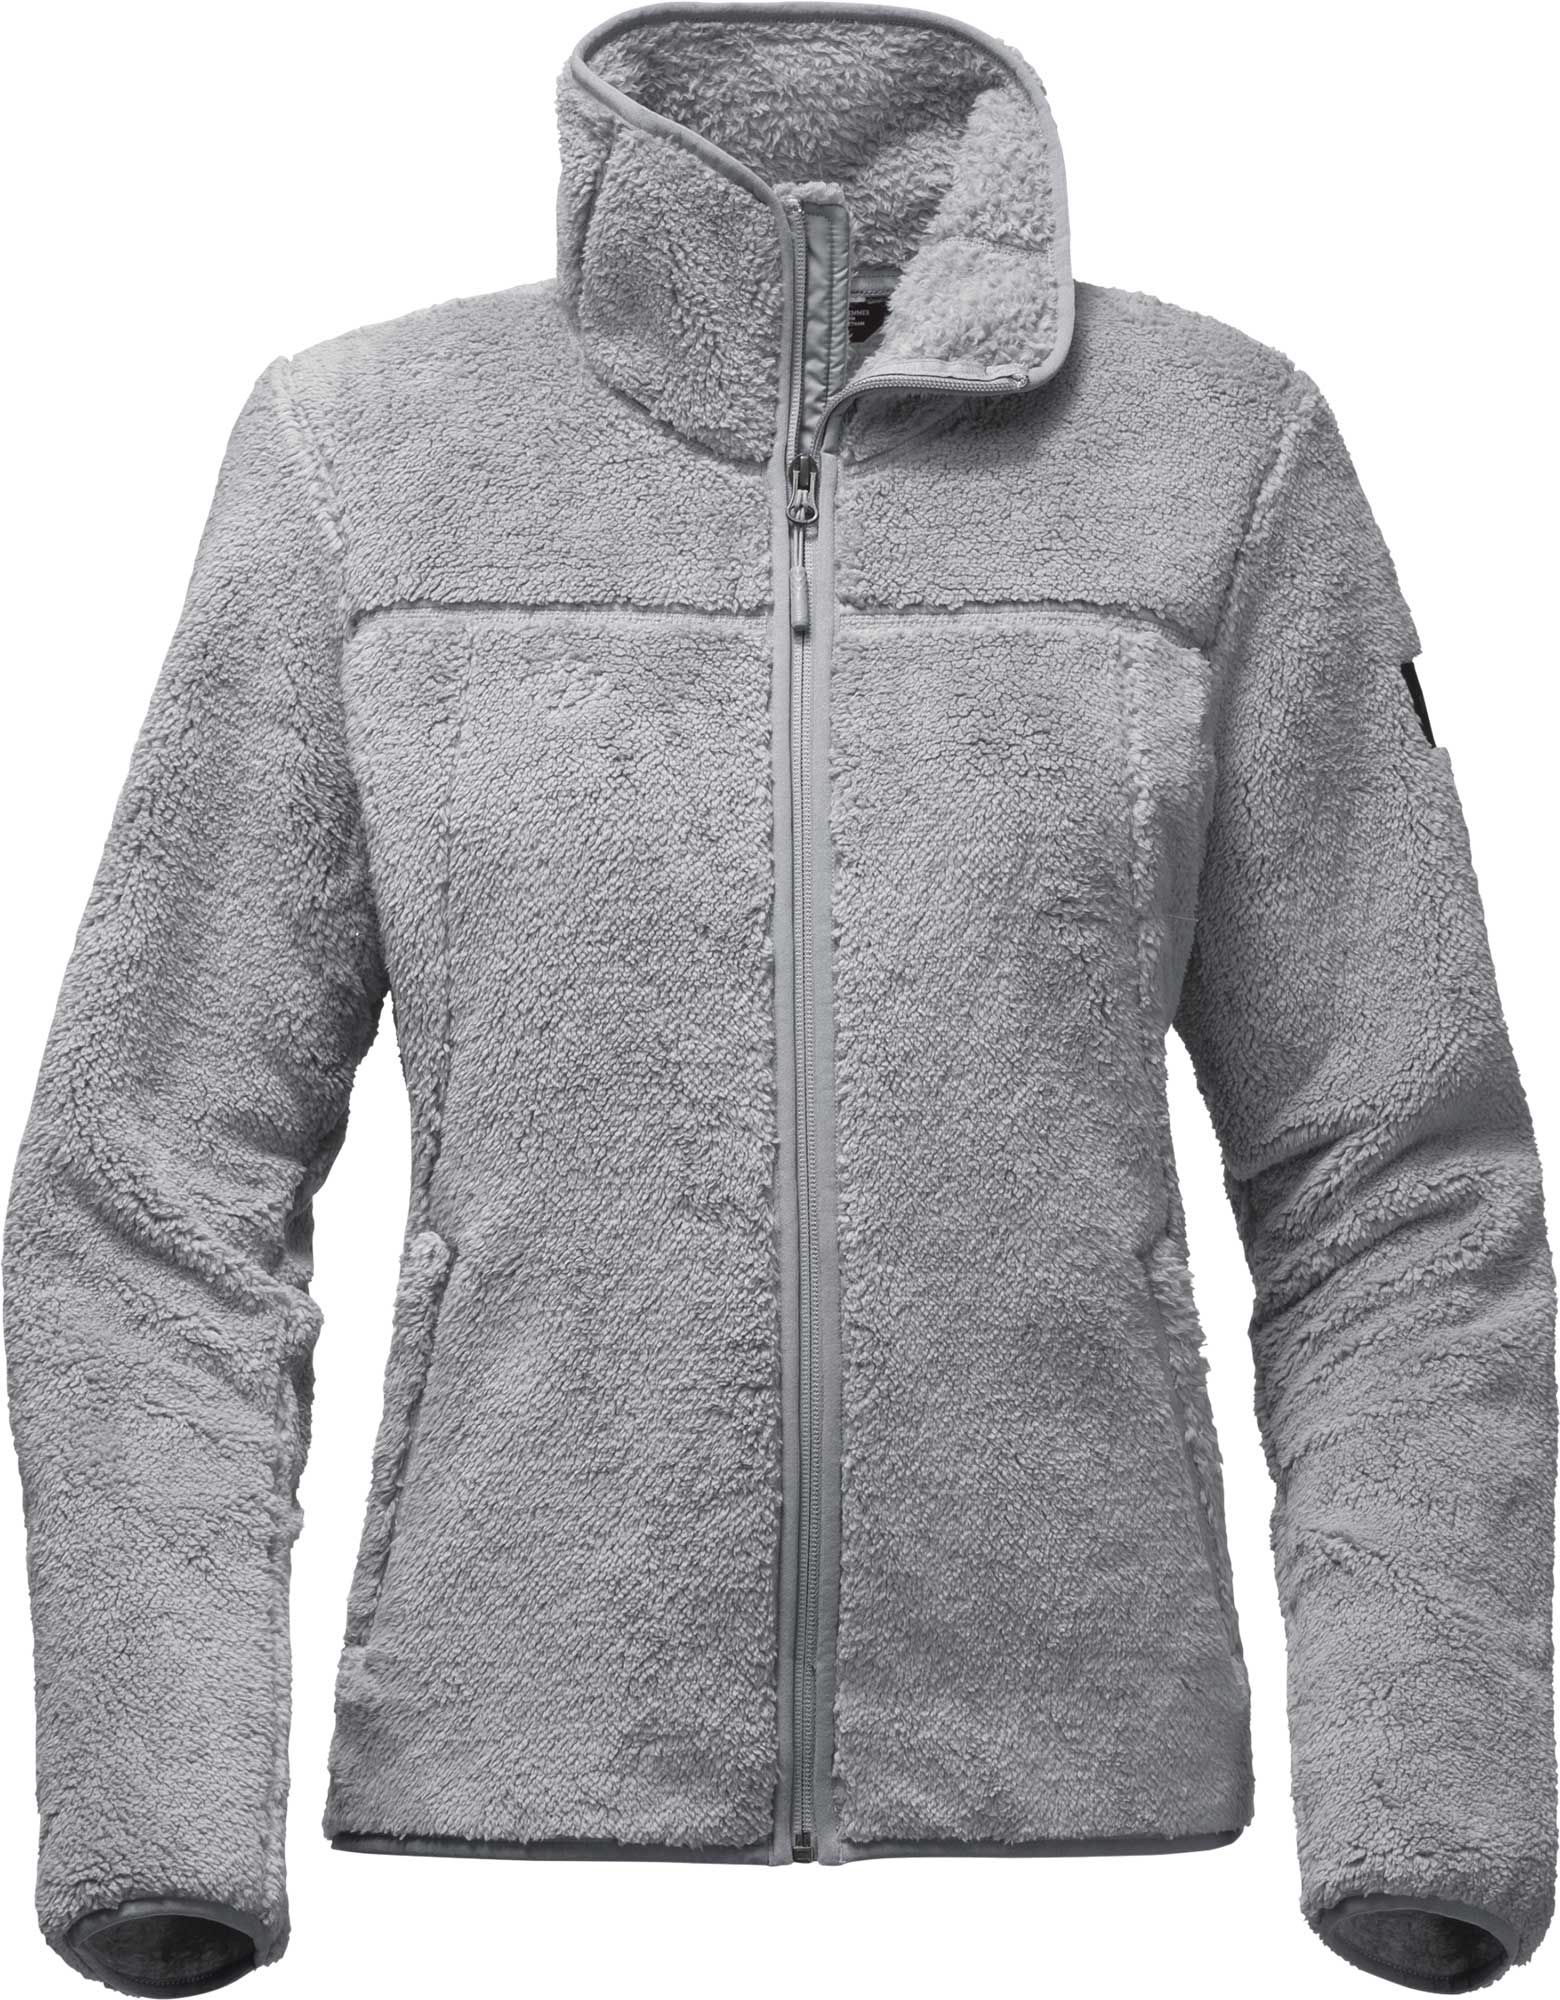 The North Face Women's Campshire Full Zip Fleece Jacket - Past ...